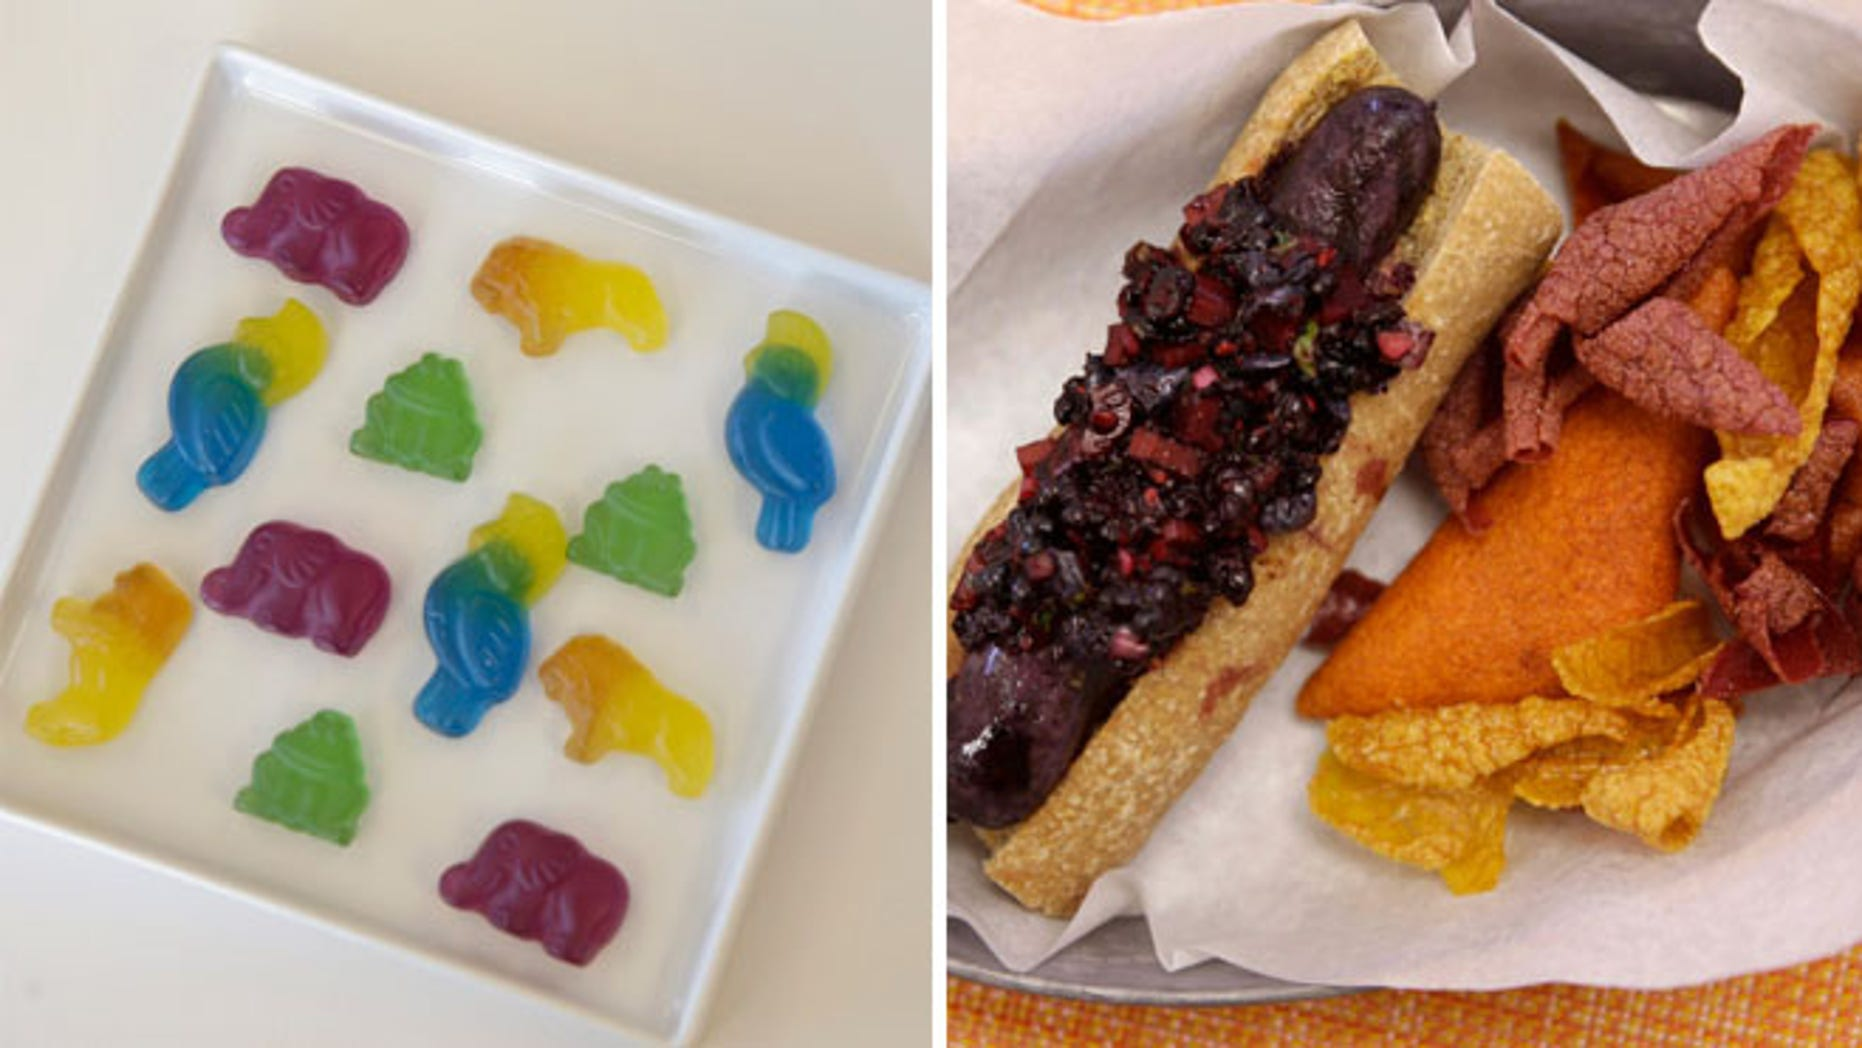 Food makers, in coming up for alternatives to synthetic dyes, are making food that doesn't look the same.